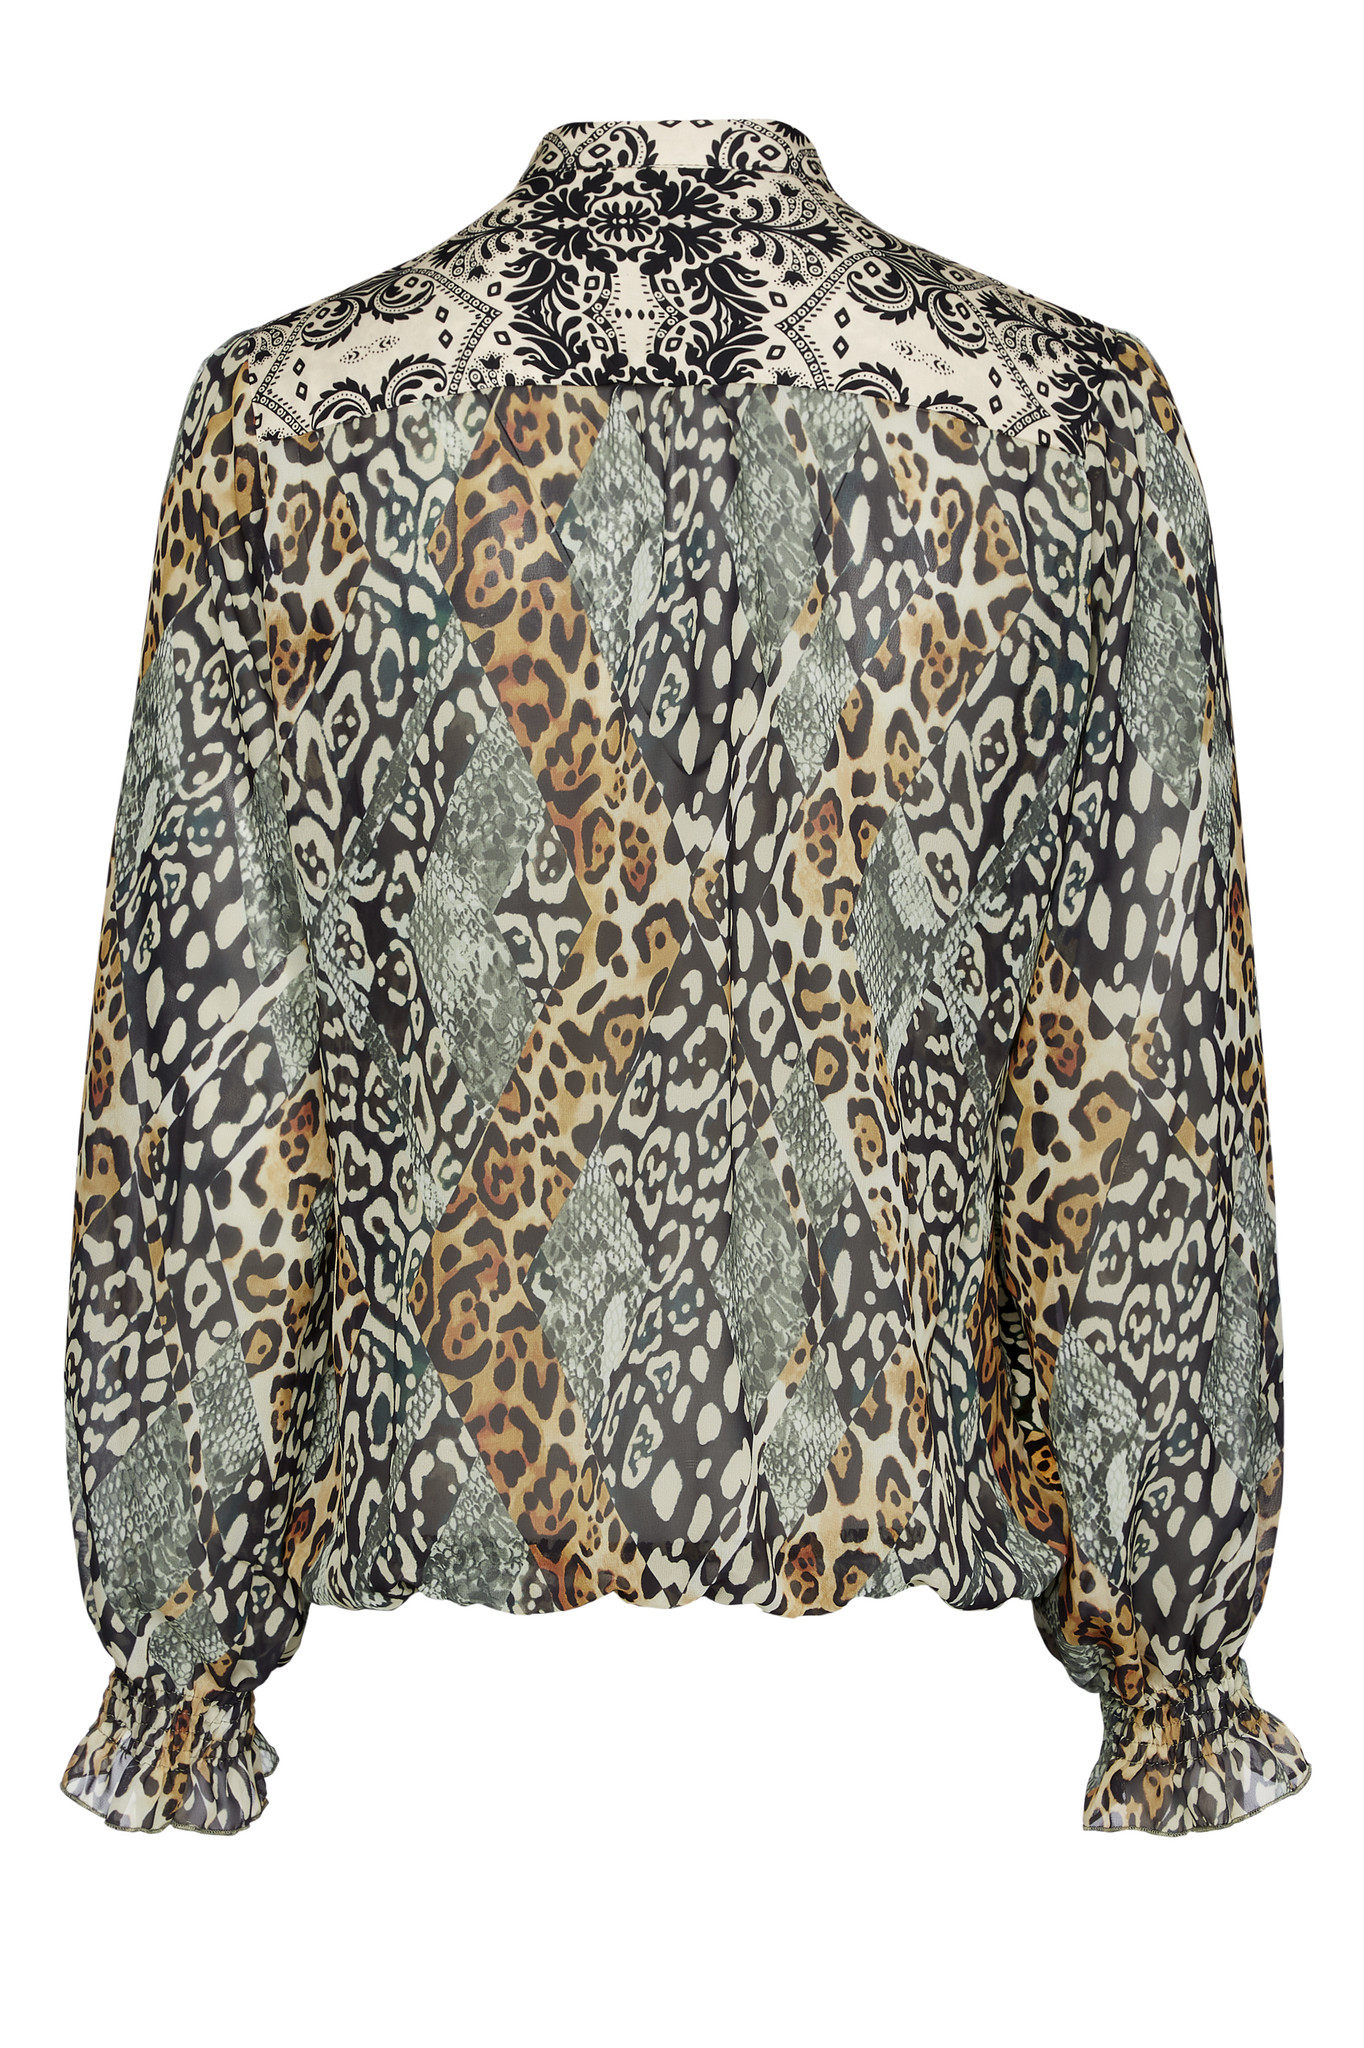 TESSA KOOPS GITTA ANIMAL MIX TOP